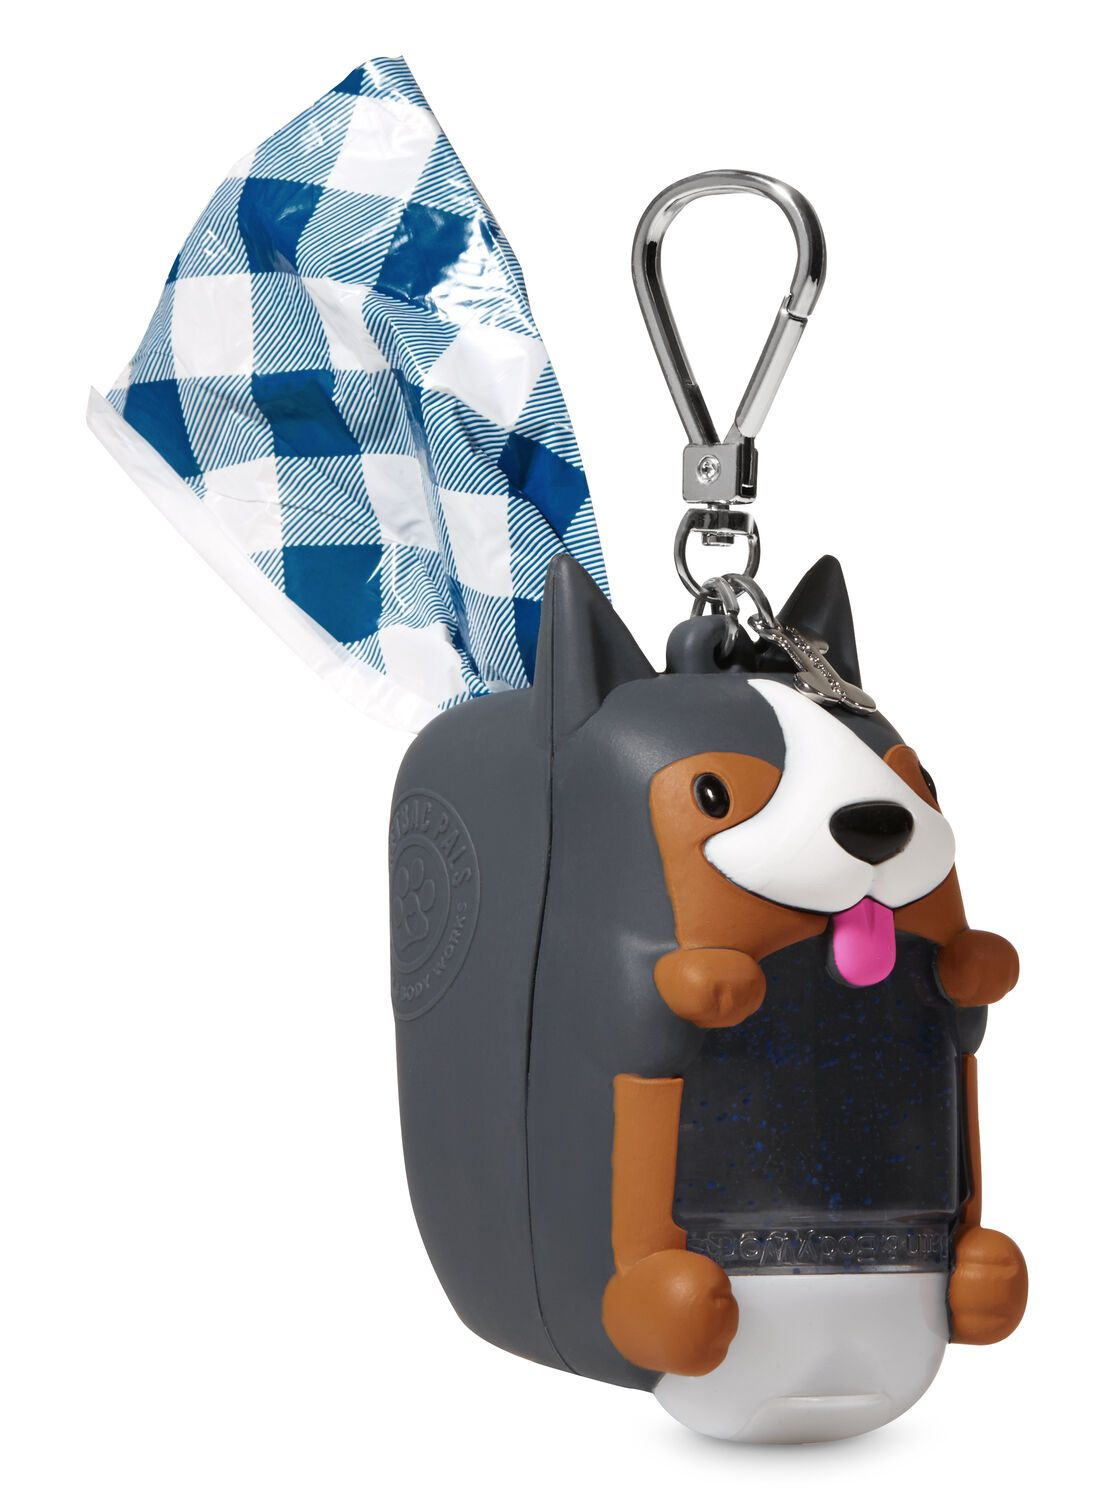 Bath Body Works Shepherd Doggie Bag Pocketbac Holder Dog Bag